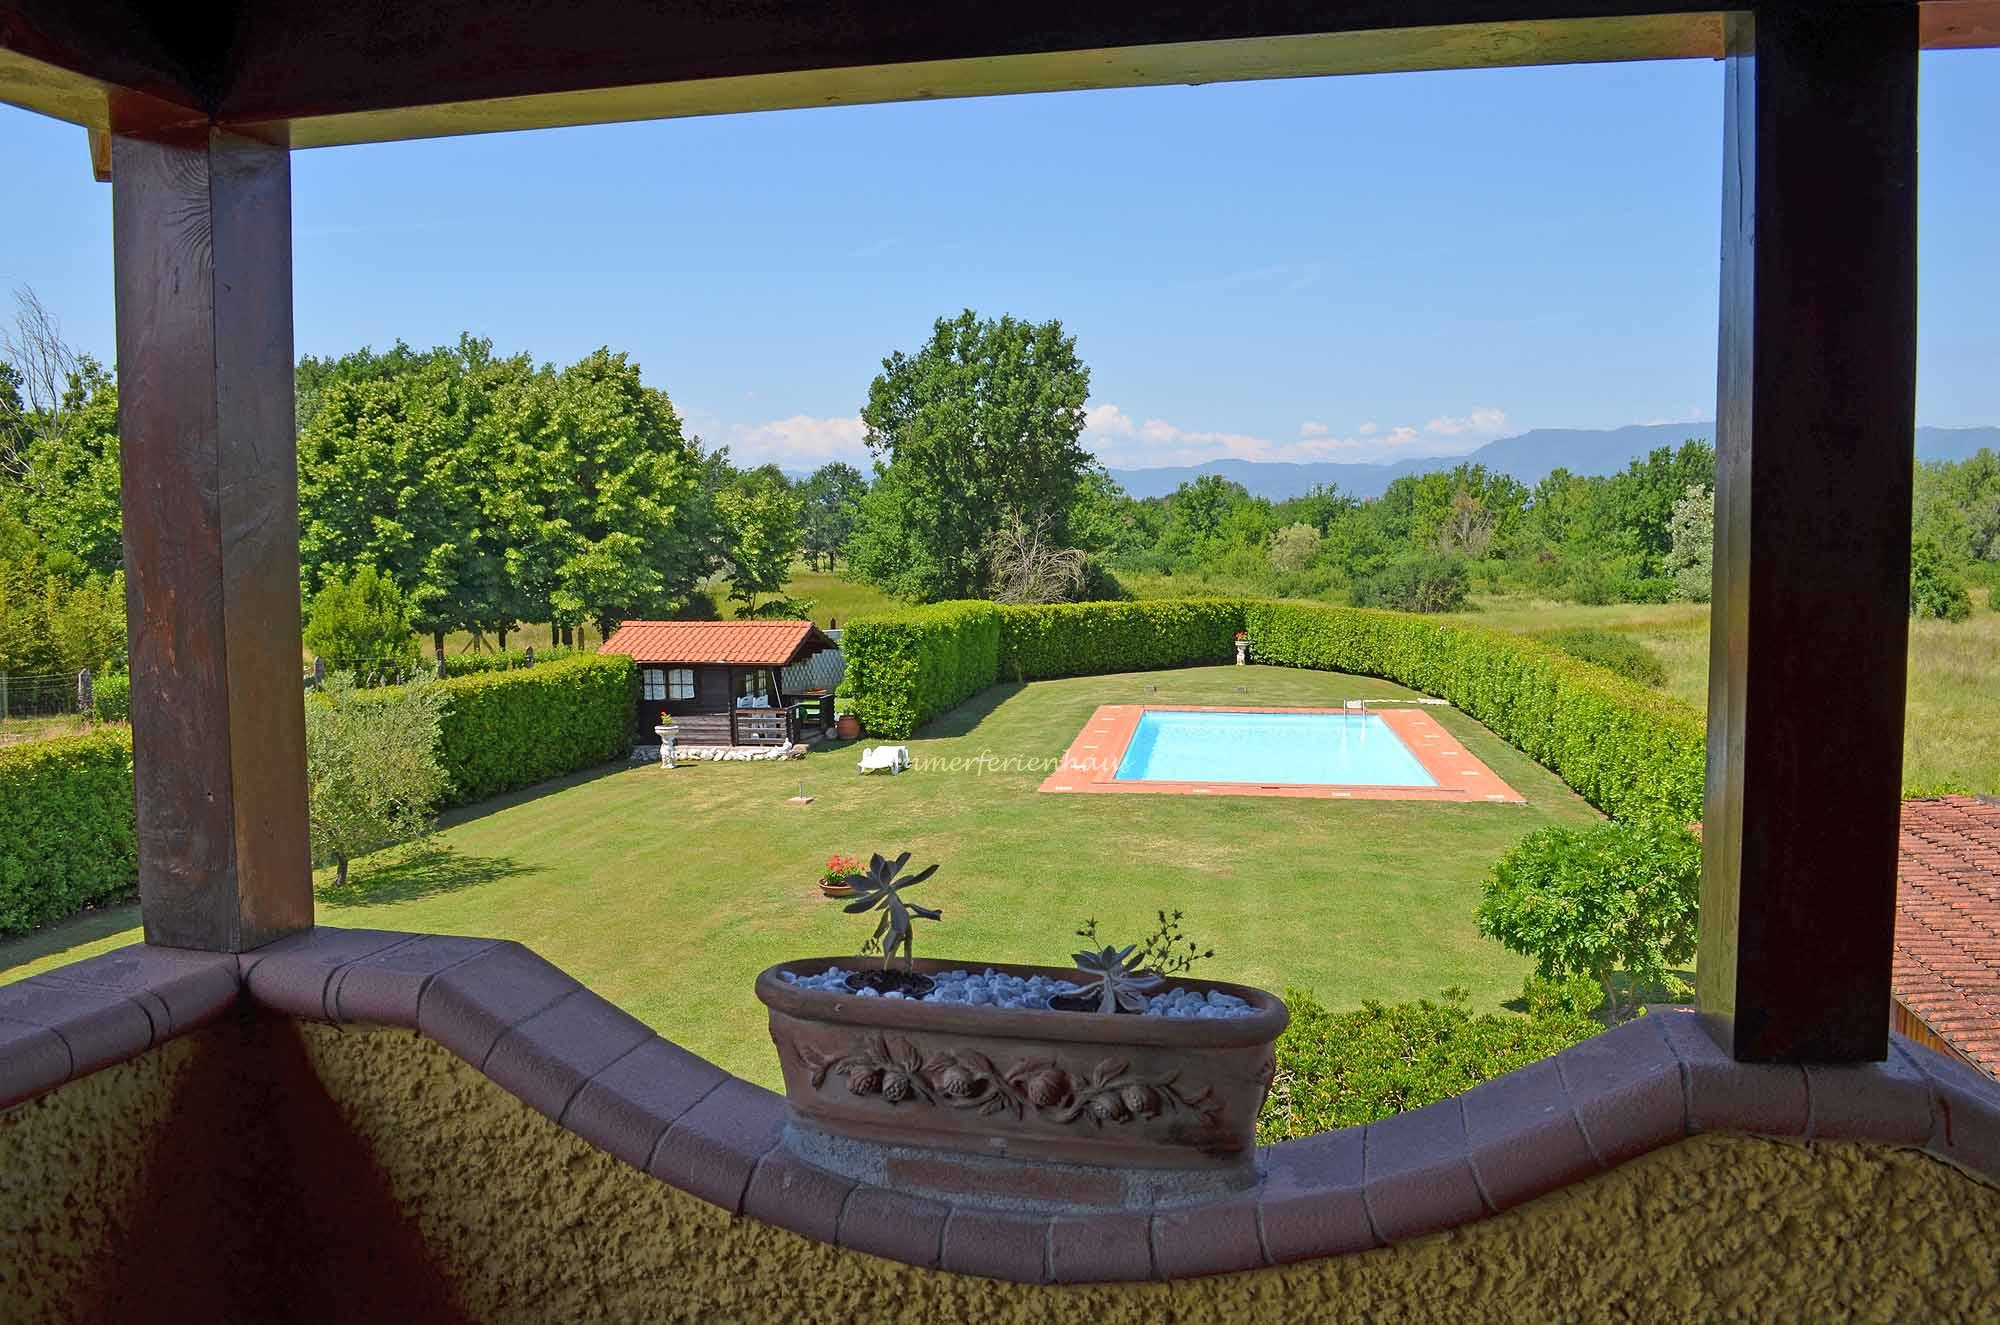 ... In The Middle Of The Landscaped Garden The Private Pool Of The Holiday  Home Is Located ...